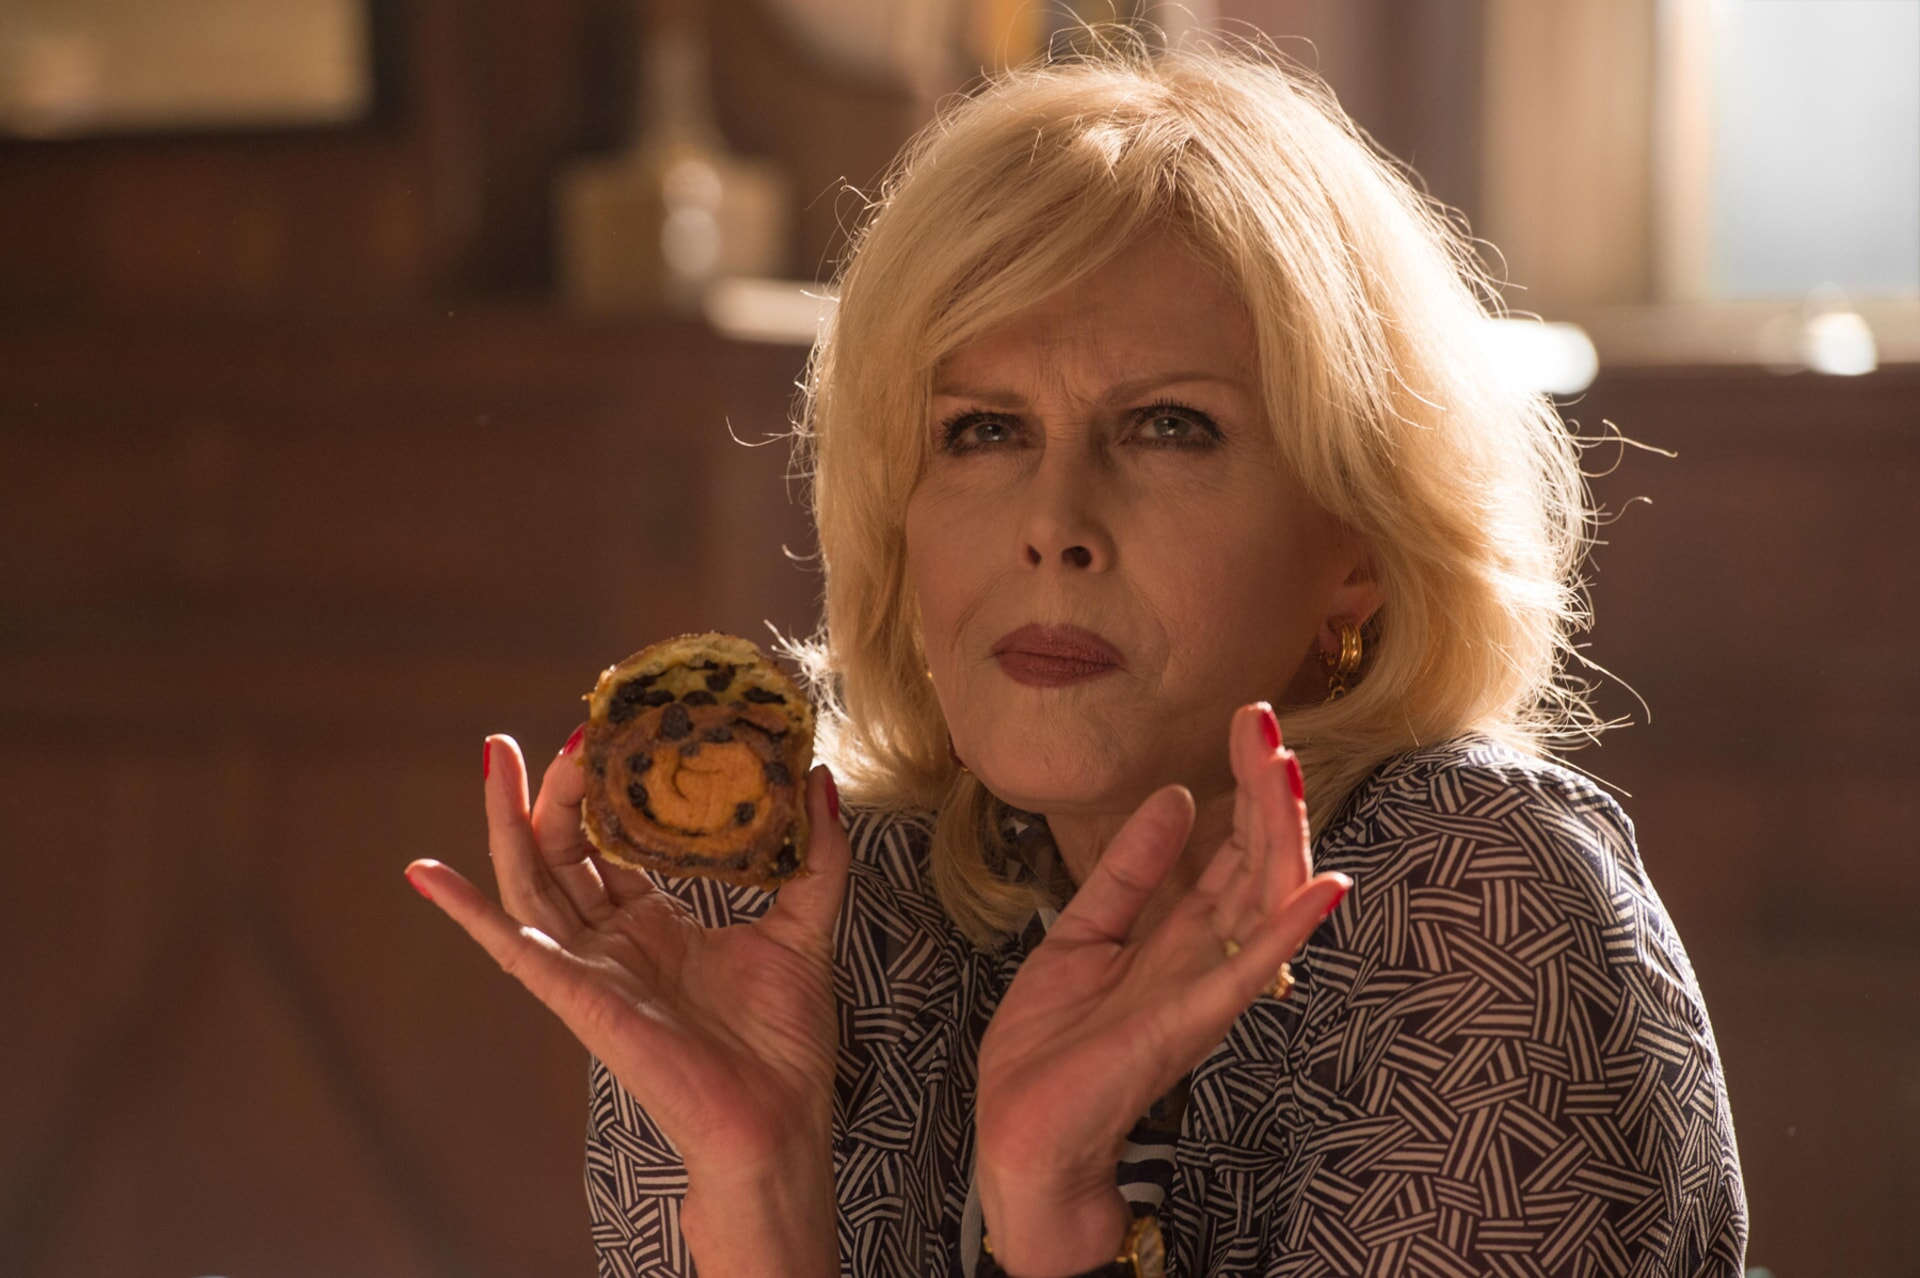 """JOANNA LUMLEY as Felicity Fanshawe in the family adventure """"PADDINGTON 2,"""" from Warner Bros. Pictures and STUDIOCANAL, in association with Anton Capital Entertainment S.C.A., a Warner Bros. Pictures release."""